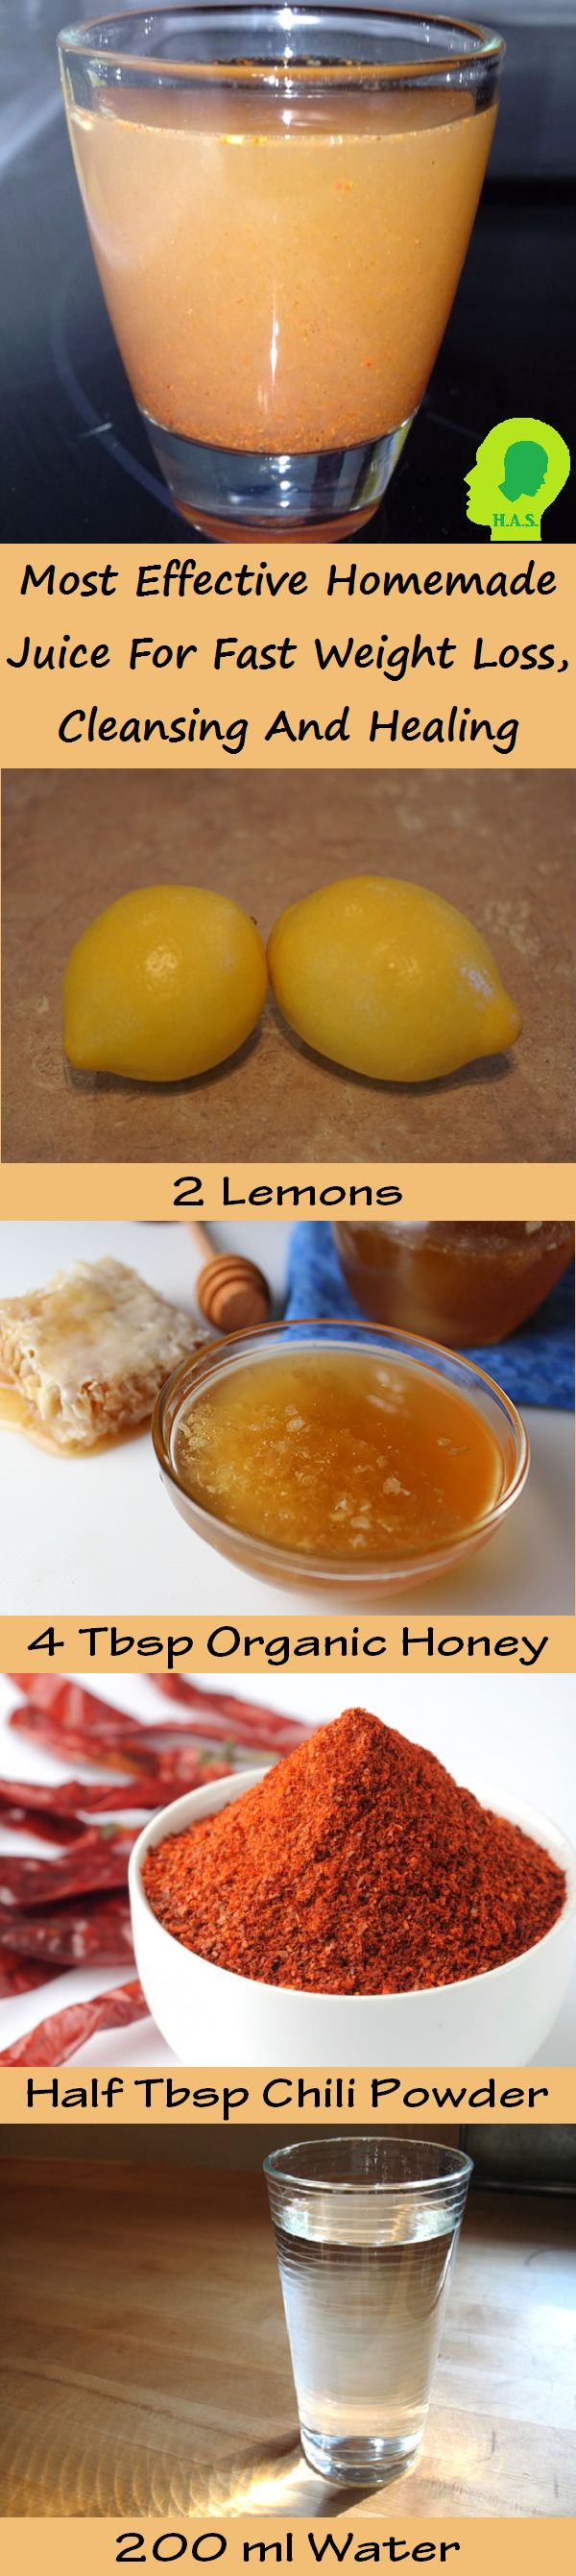 It helps in cleansing the liver and reduces the level of stress hormones in the organism.